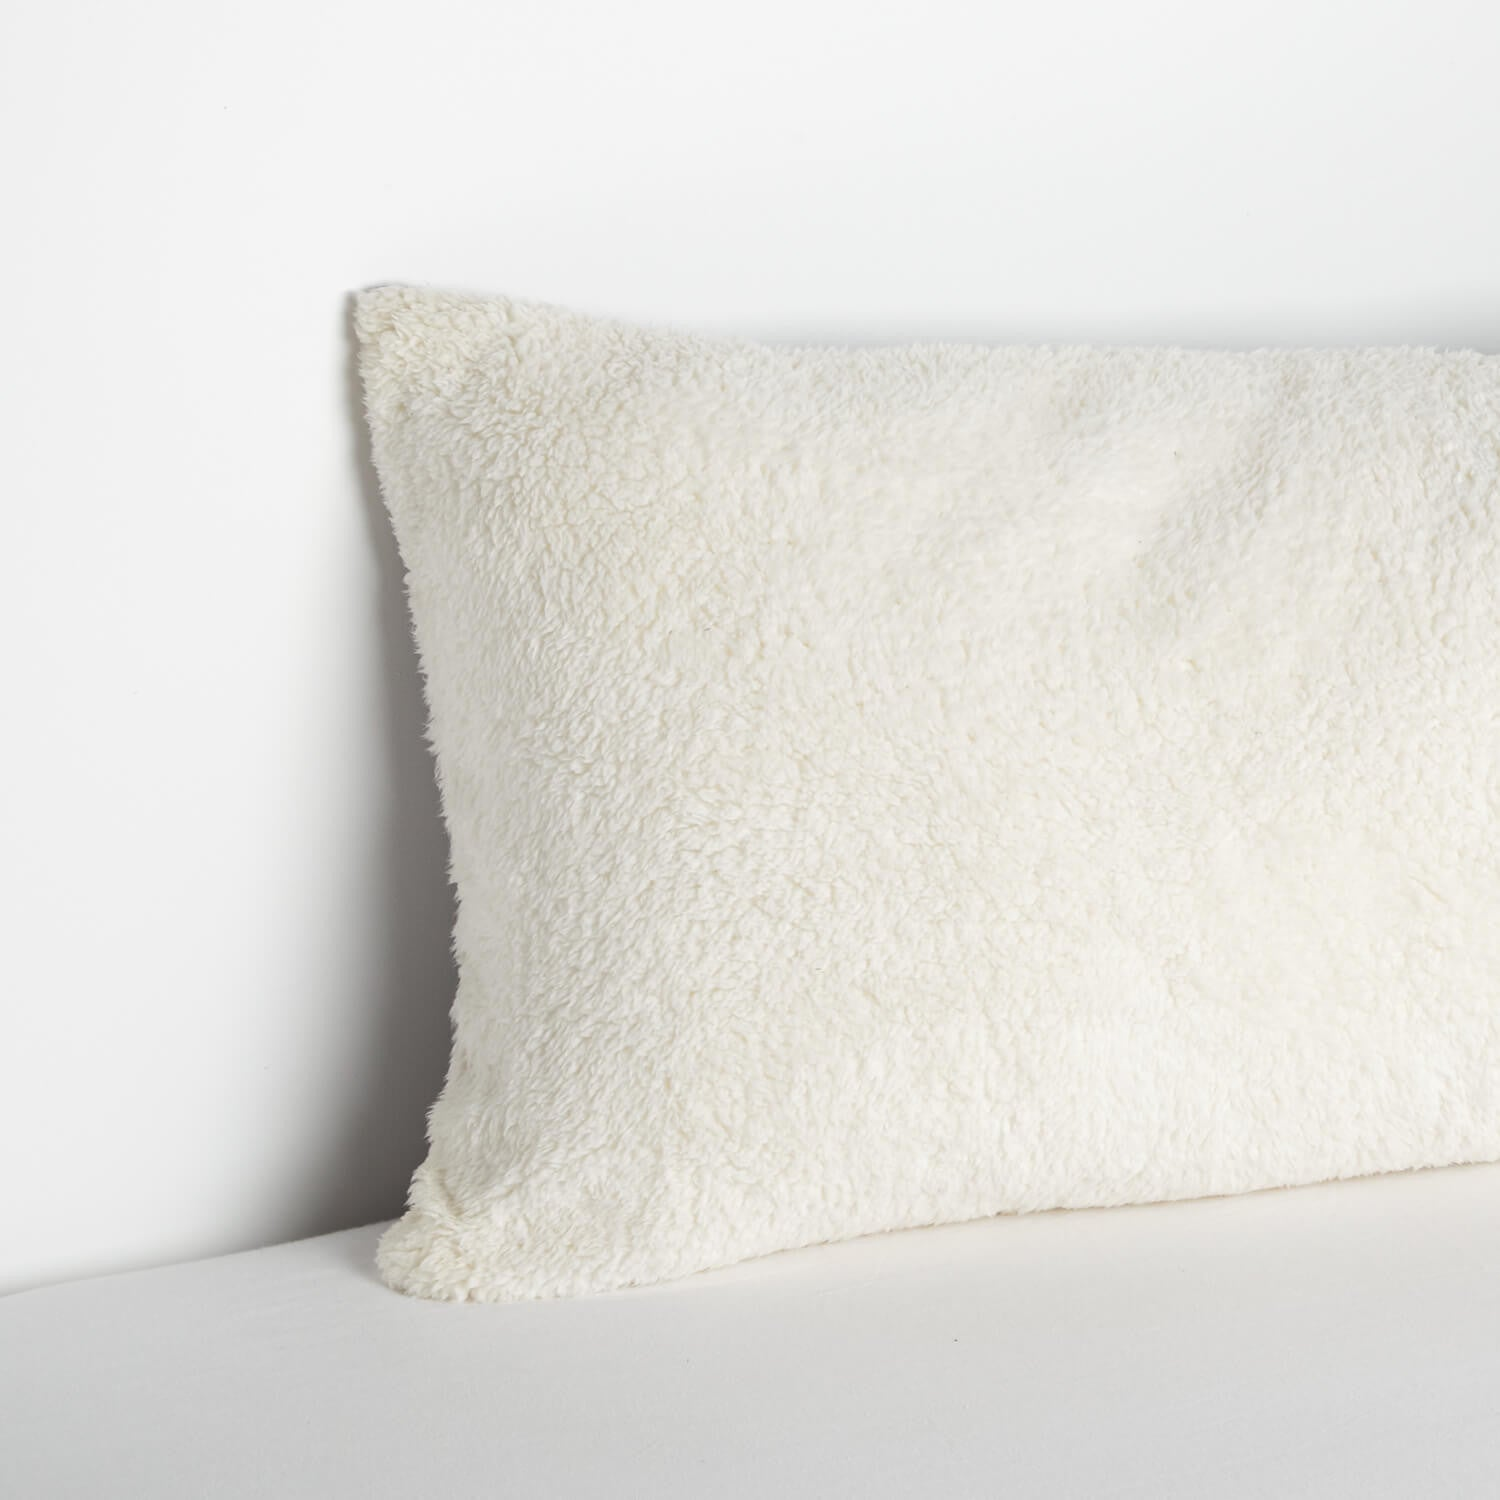 Sweatshirt/Sherpa Body Pillow Cover